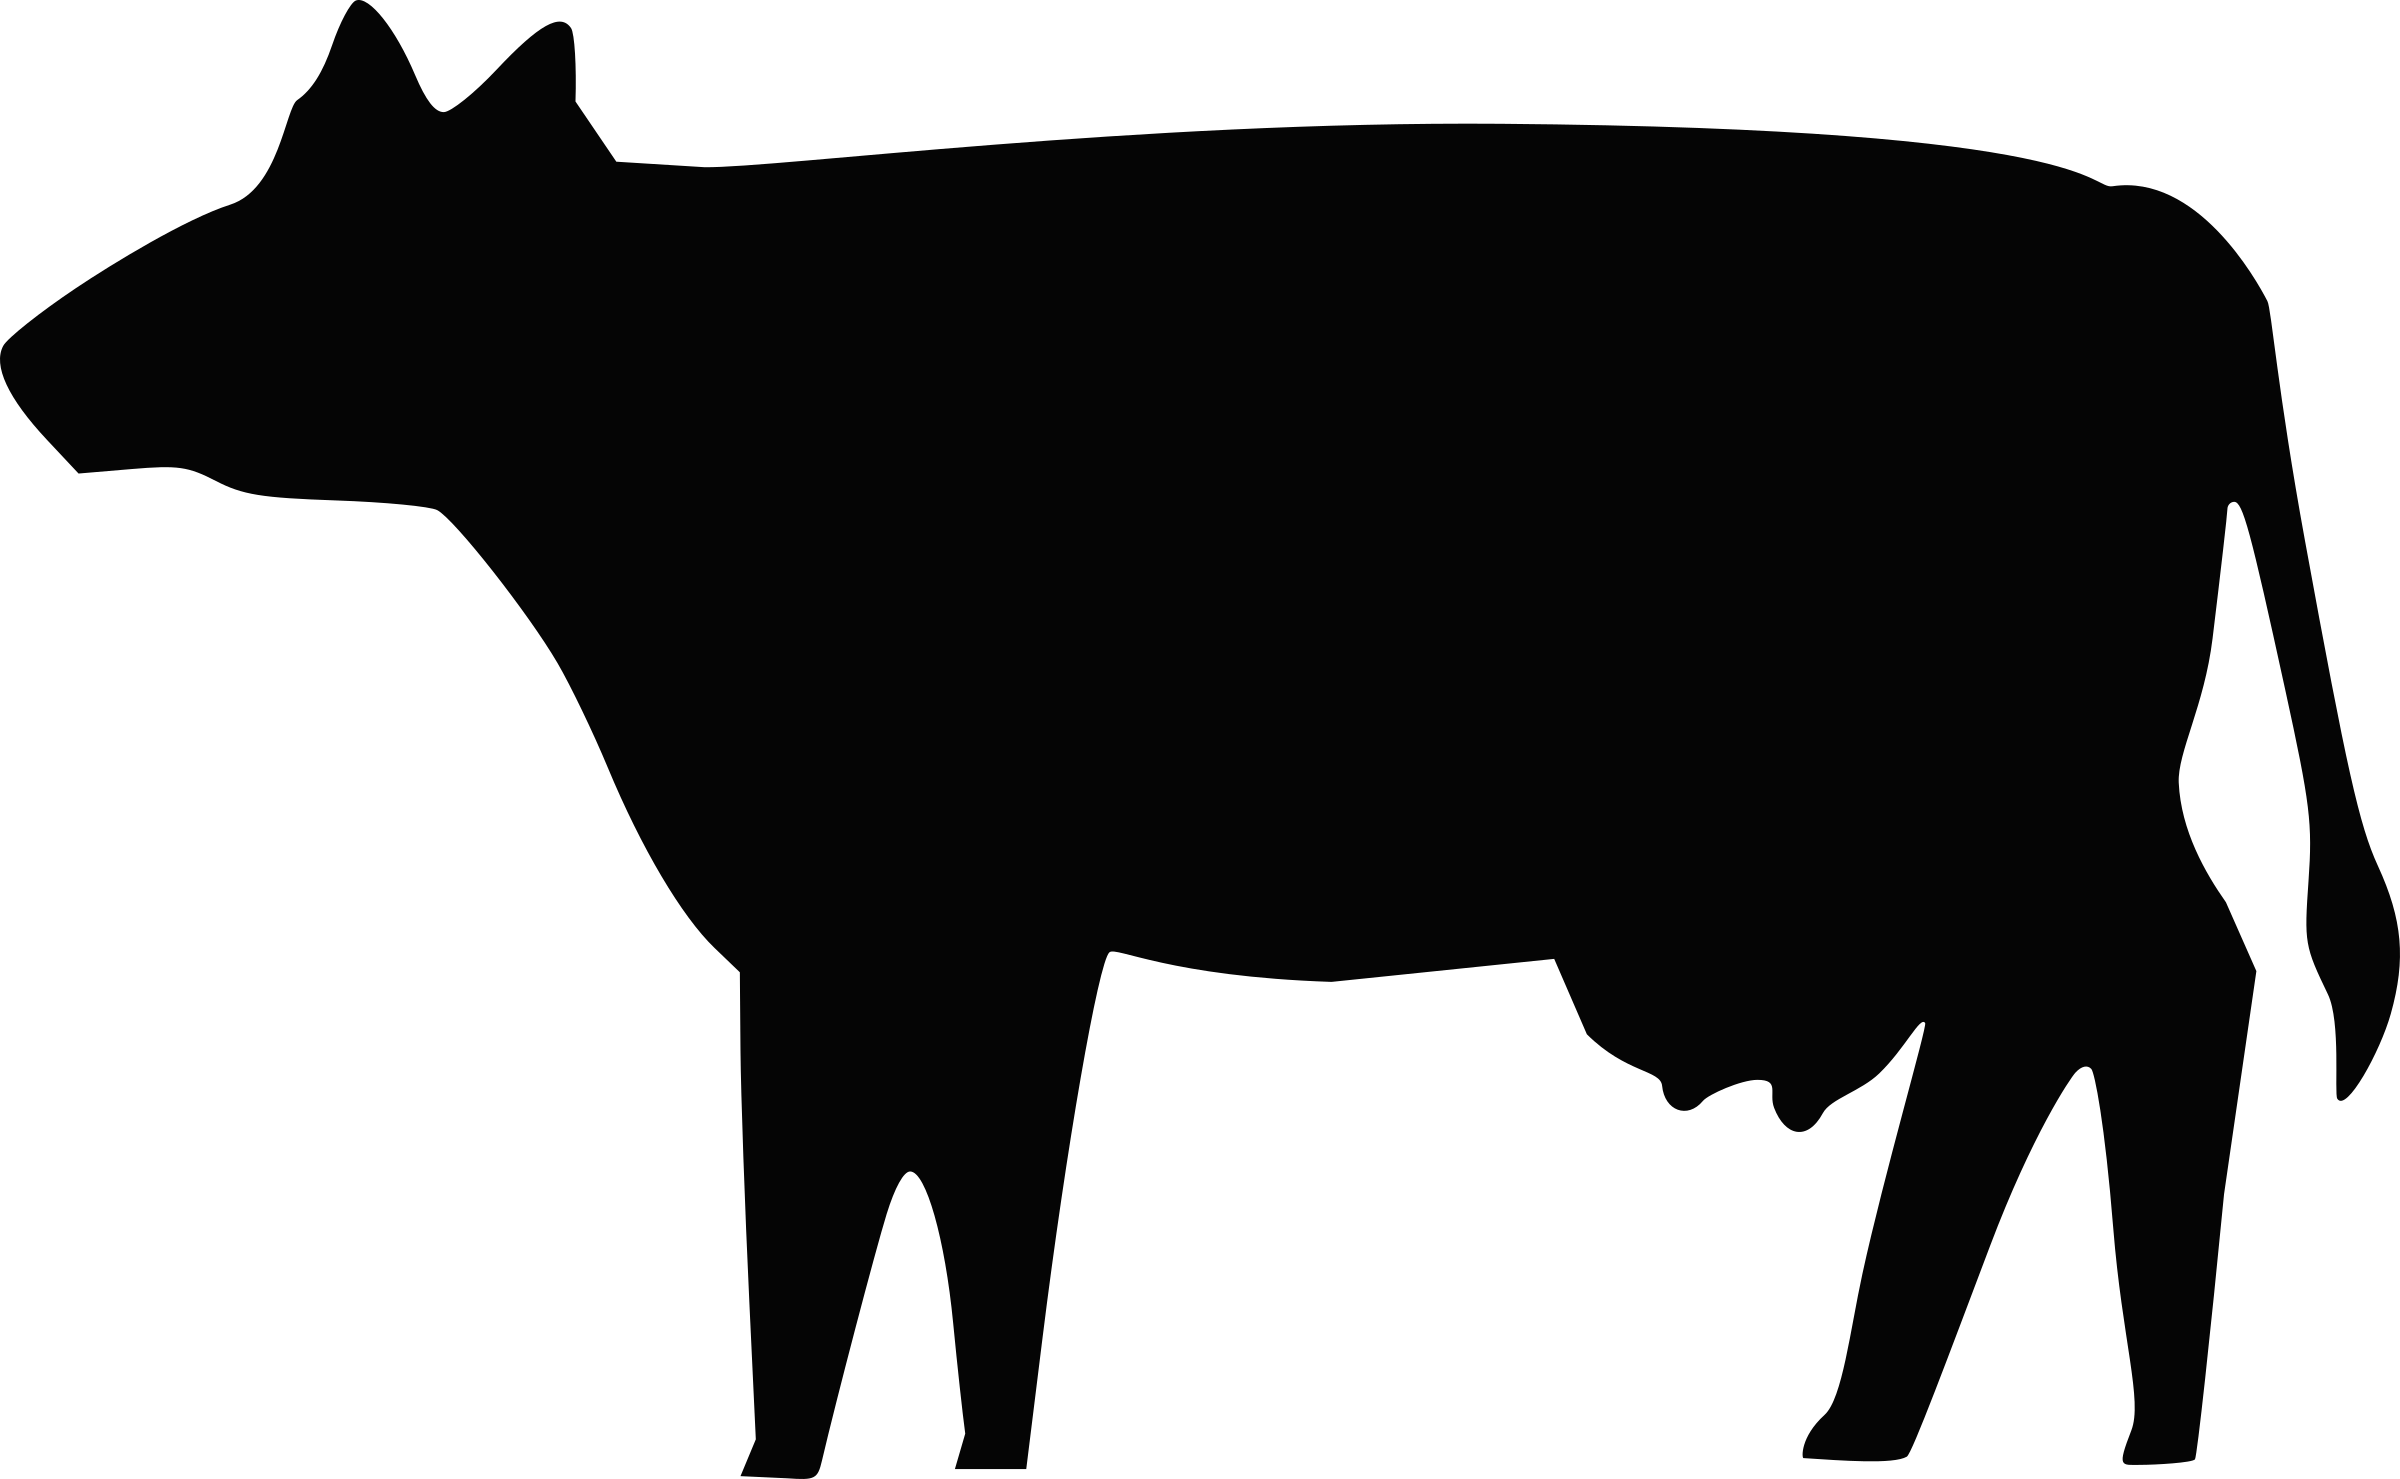 Clipart cow silhouette. Big image png